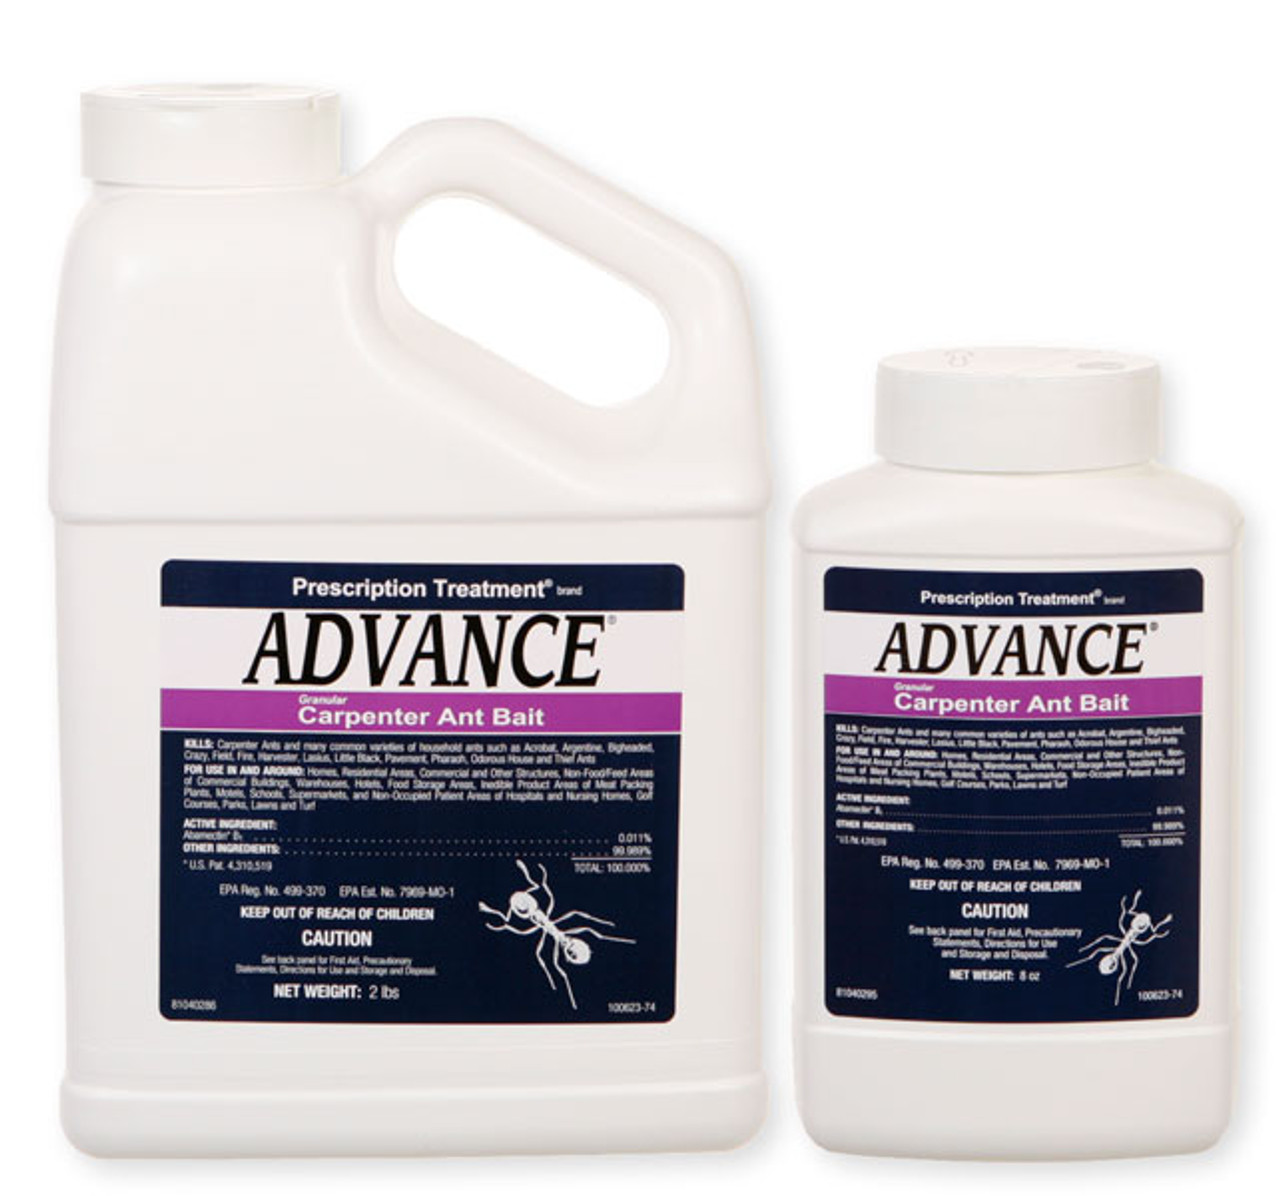 ADVANCE CARPENTER ANT GRANULAR BAIT IS THE #1 CARPENTER ANT BAIT